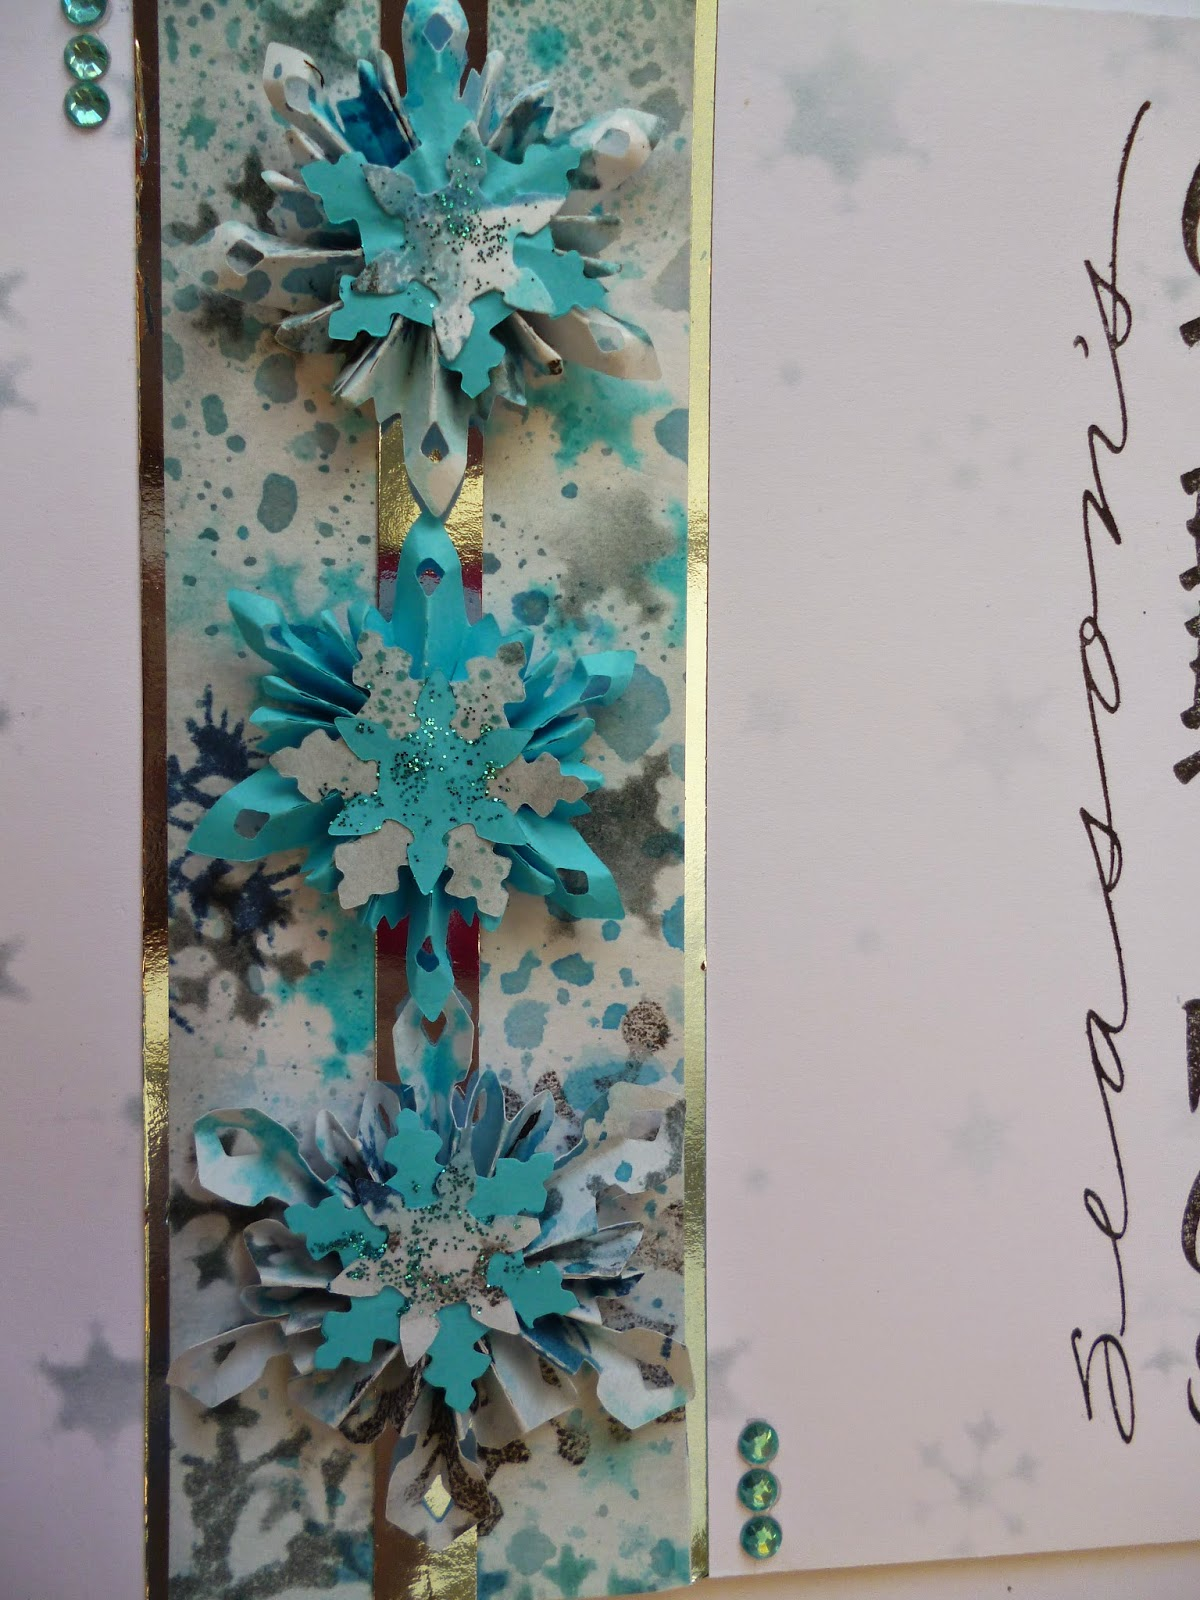 decided to make some different snowflakes this time with the tim holtz dies i really like these though they will be a bit difficult to post as the